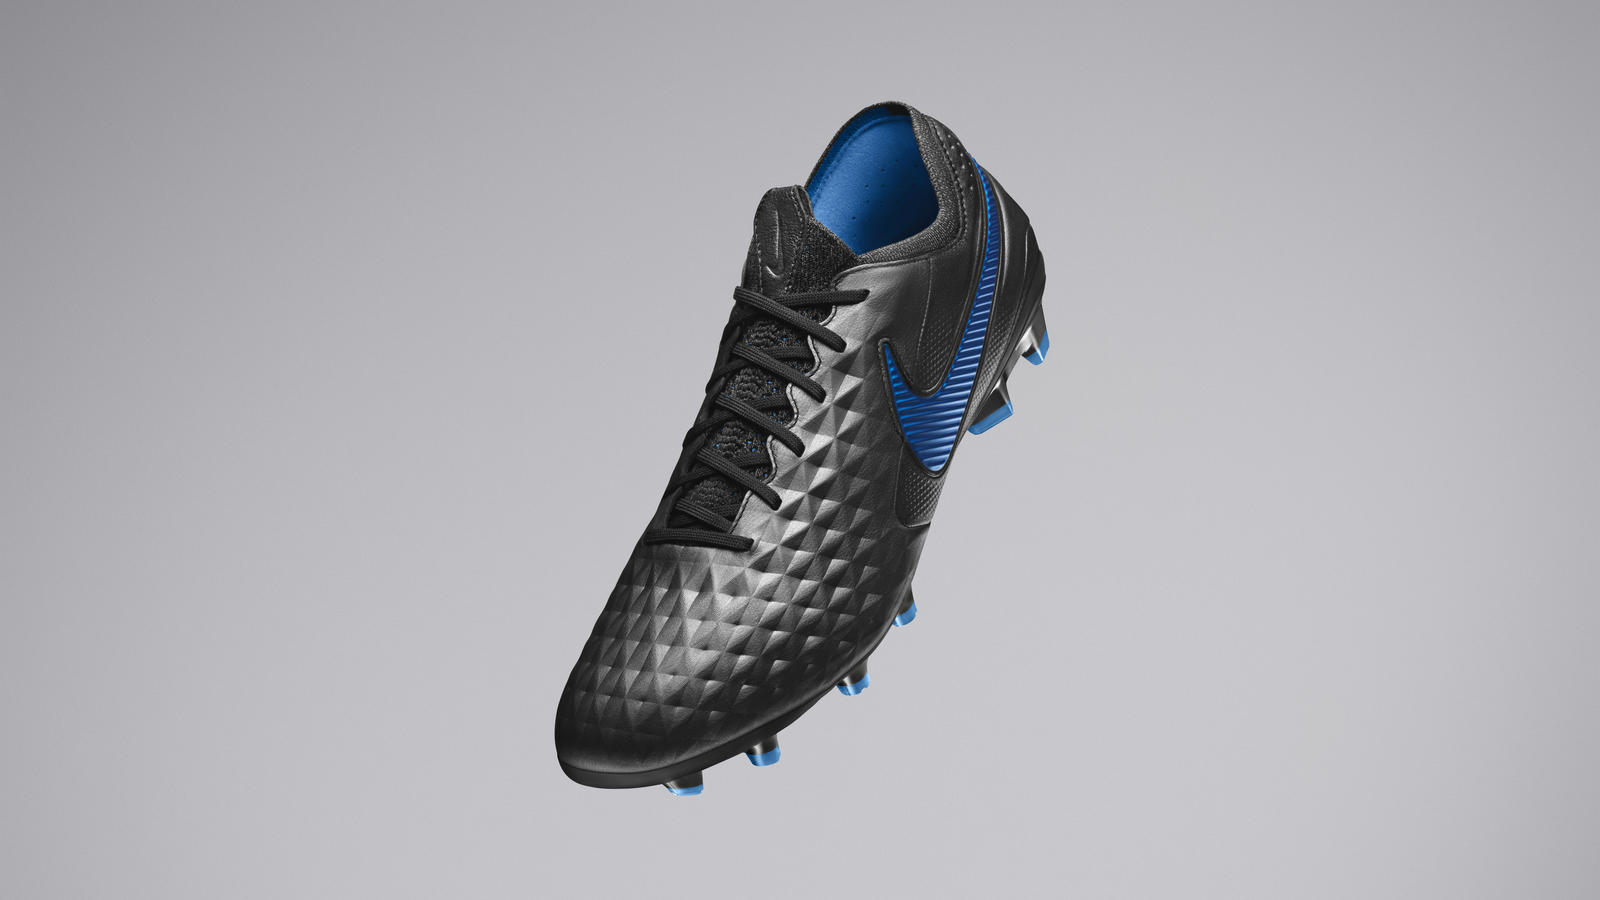 separation shoes 20bc4 10db7 Nike Tiempo Legend 8 Official Images and Release Info - Nike ...